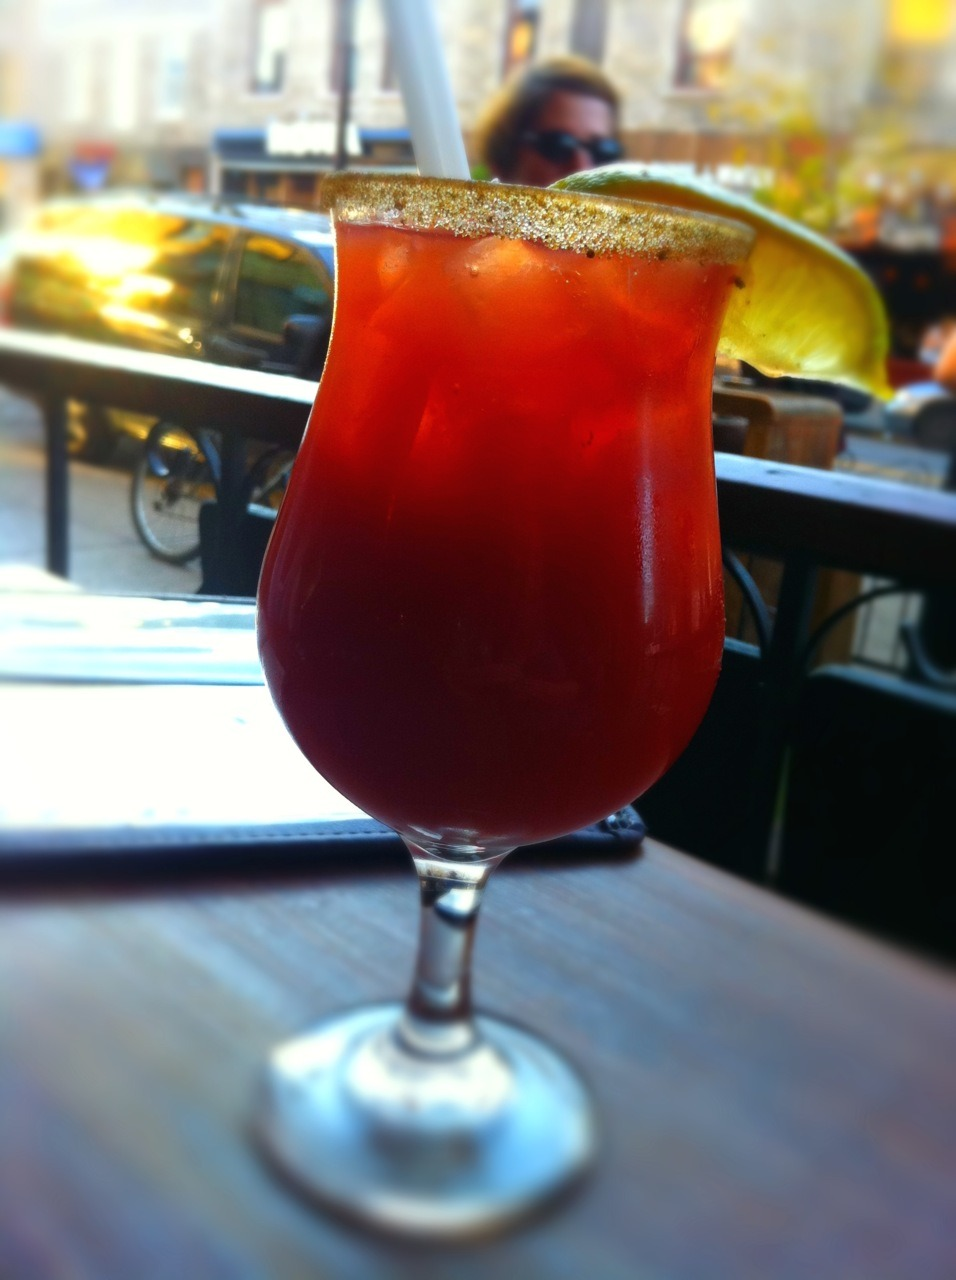 Bloody Caesar @ Barraca Rhumerie 1134, Mont-Royal East, Montreal 7/10 Notes: The regular Bloody Caesar was good. Then the bartender add few olives in it and a sip of olive juice. It was much better. I took 3 of them. Not proud. But I did it for research.